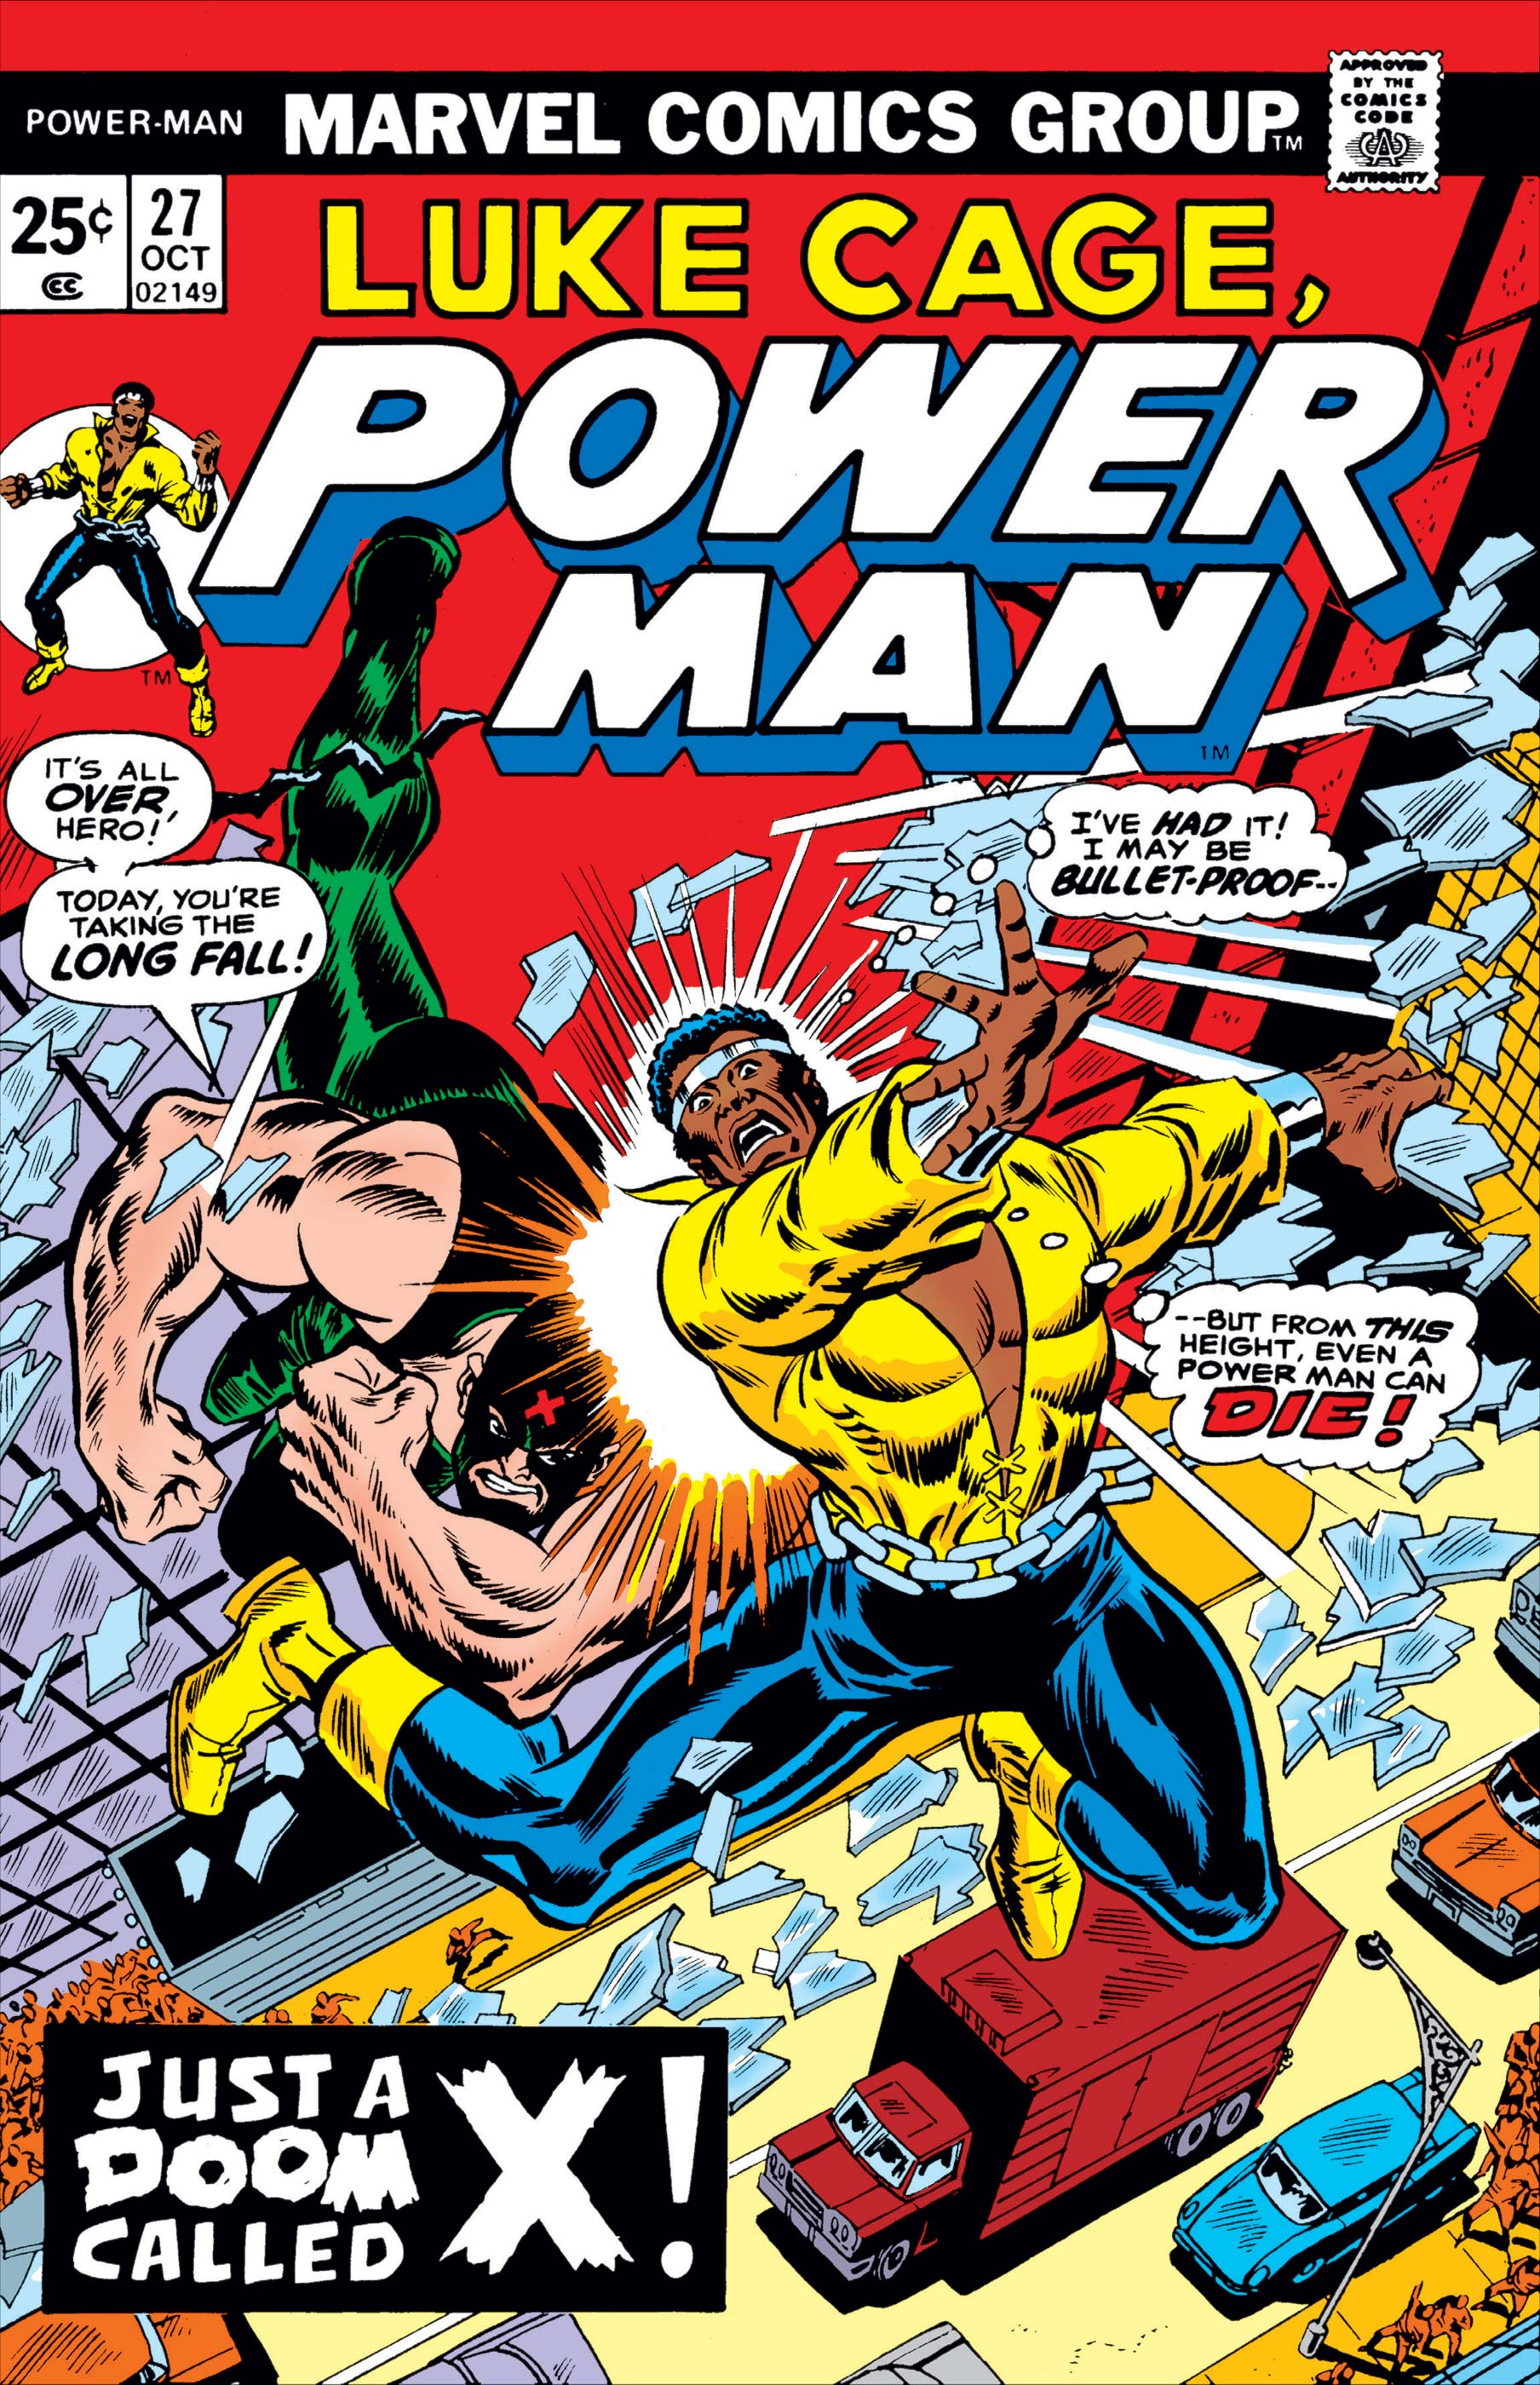 Power Man (1974) #27